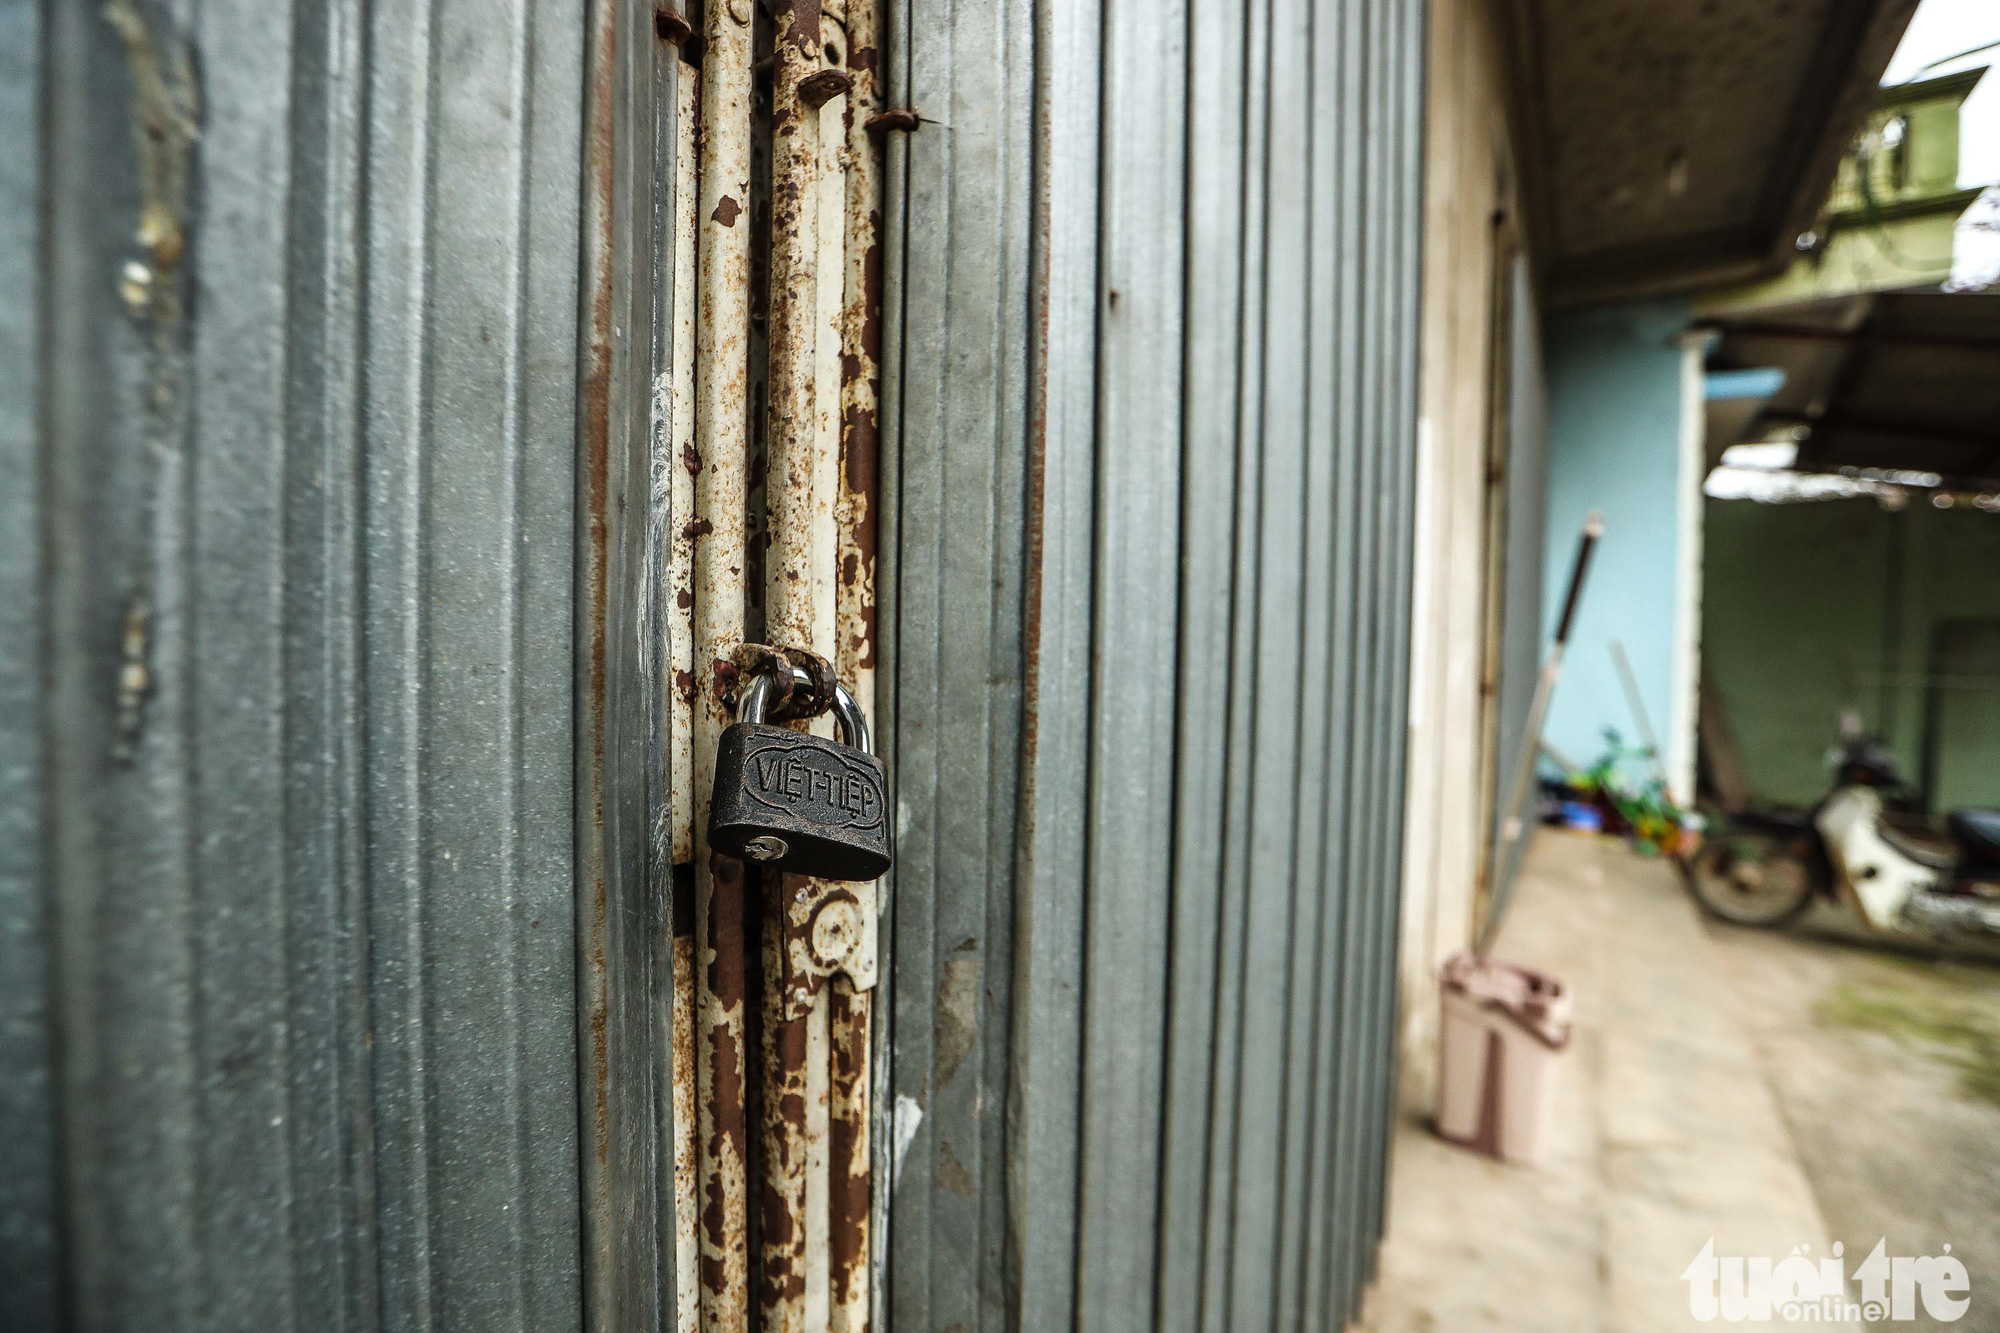 A house in Ai Van village in Son Loi Commune, Binh Xuyen District, Vinh Phuc Province, Vietnam is locked from the outside as its residents had been relocated to a quarantine zone in this photo taken on February 11, 2020. Photo: Nguyen Khanh / Tuoi Tre